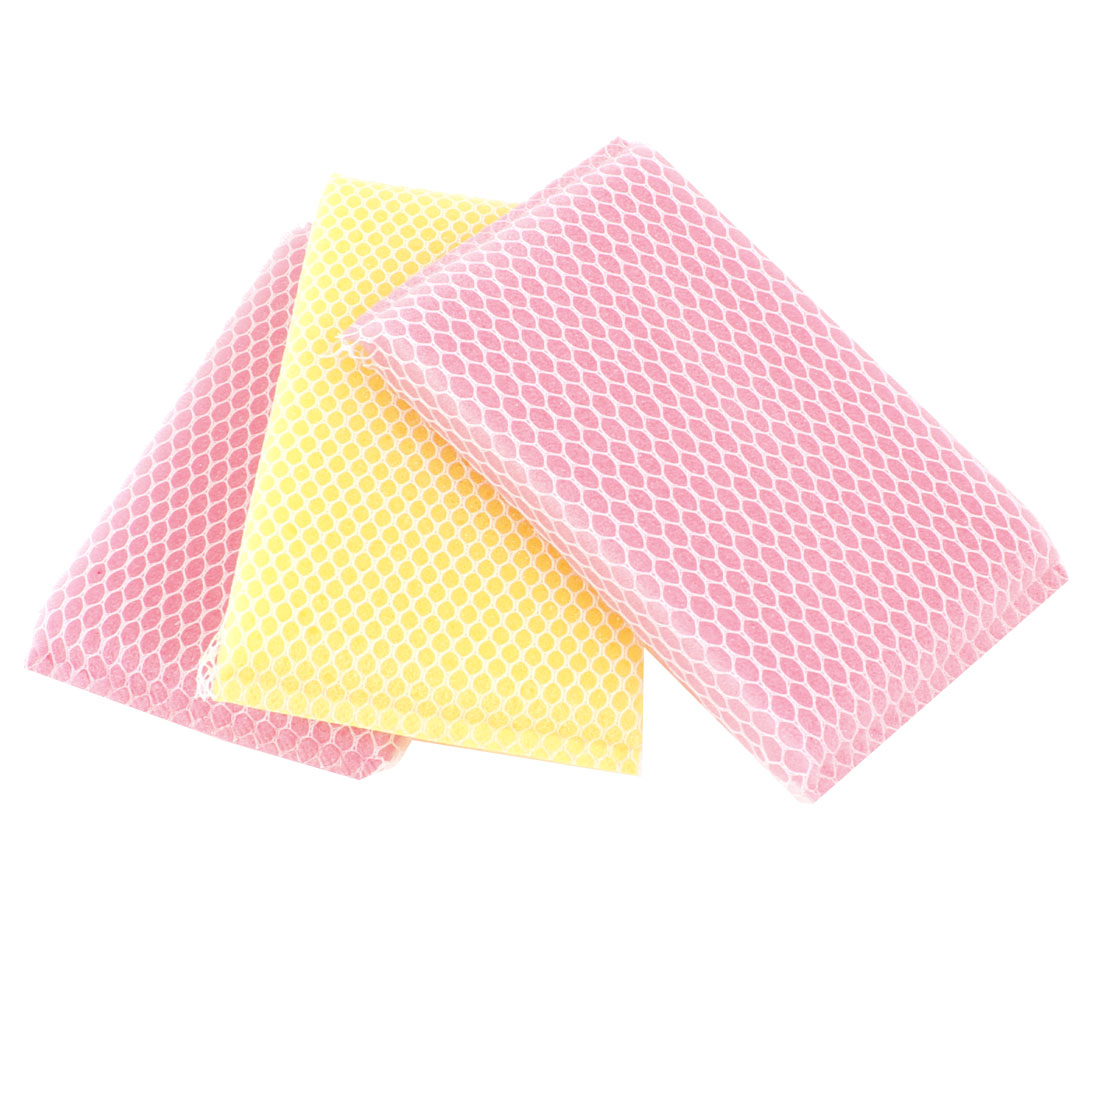 3 Pcs Kitchen Dish Bowl Pink Yellow Scouring Sponge Cleaning Pads